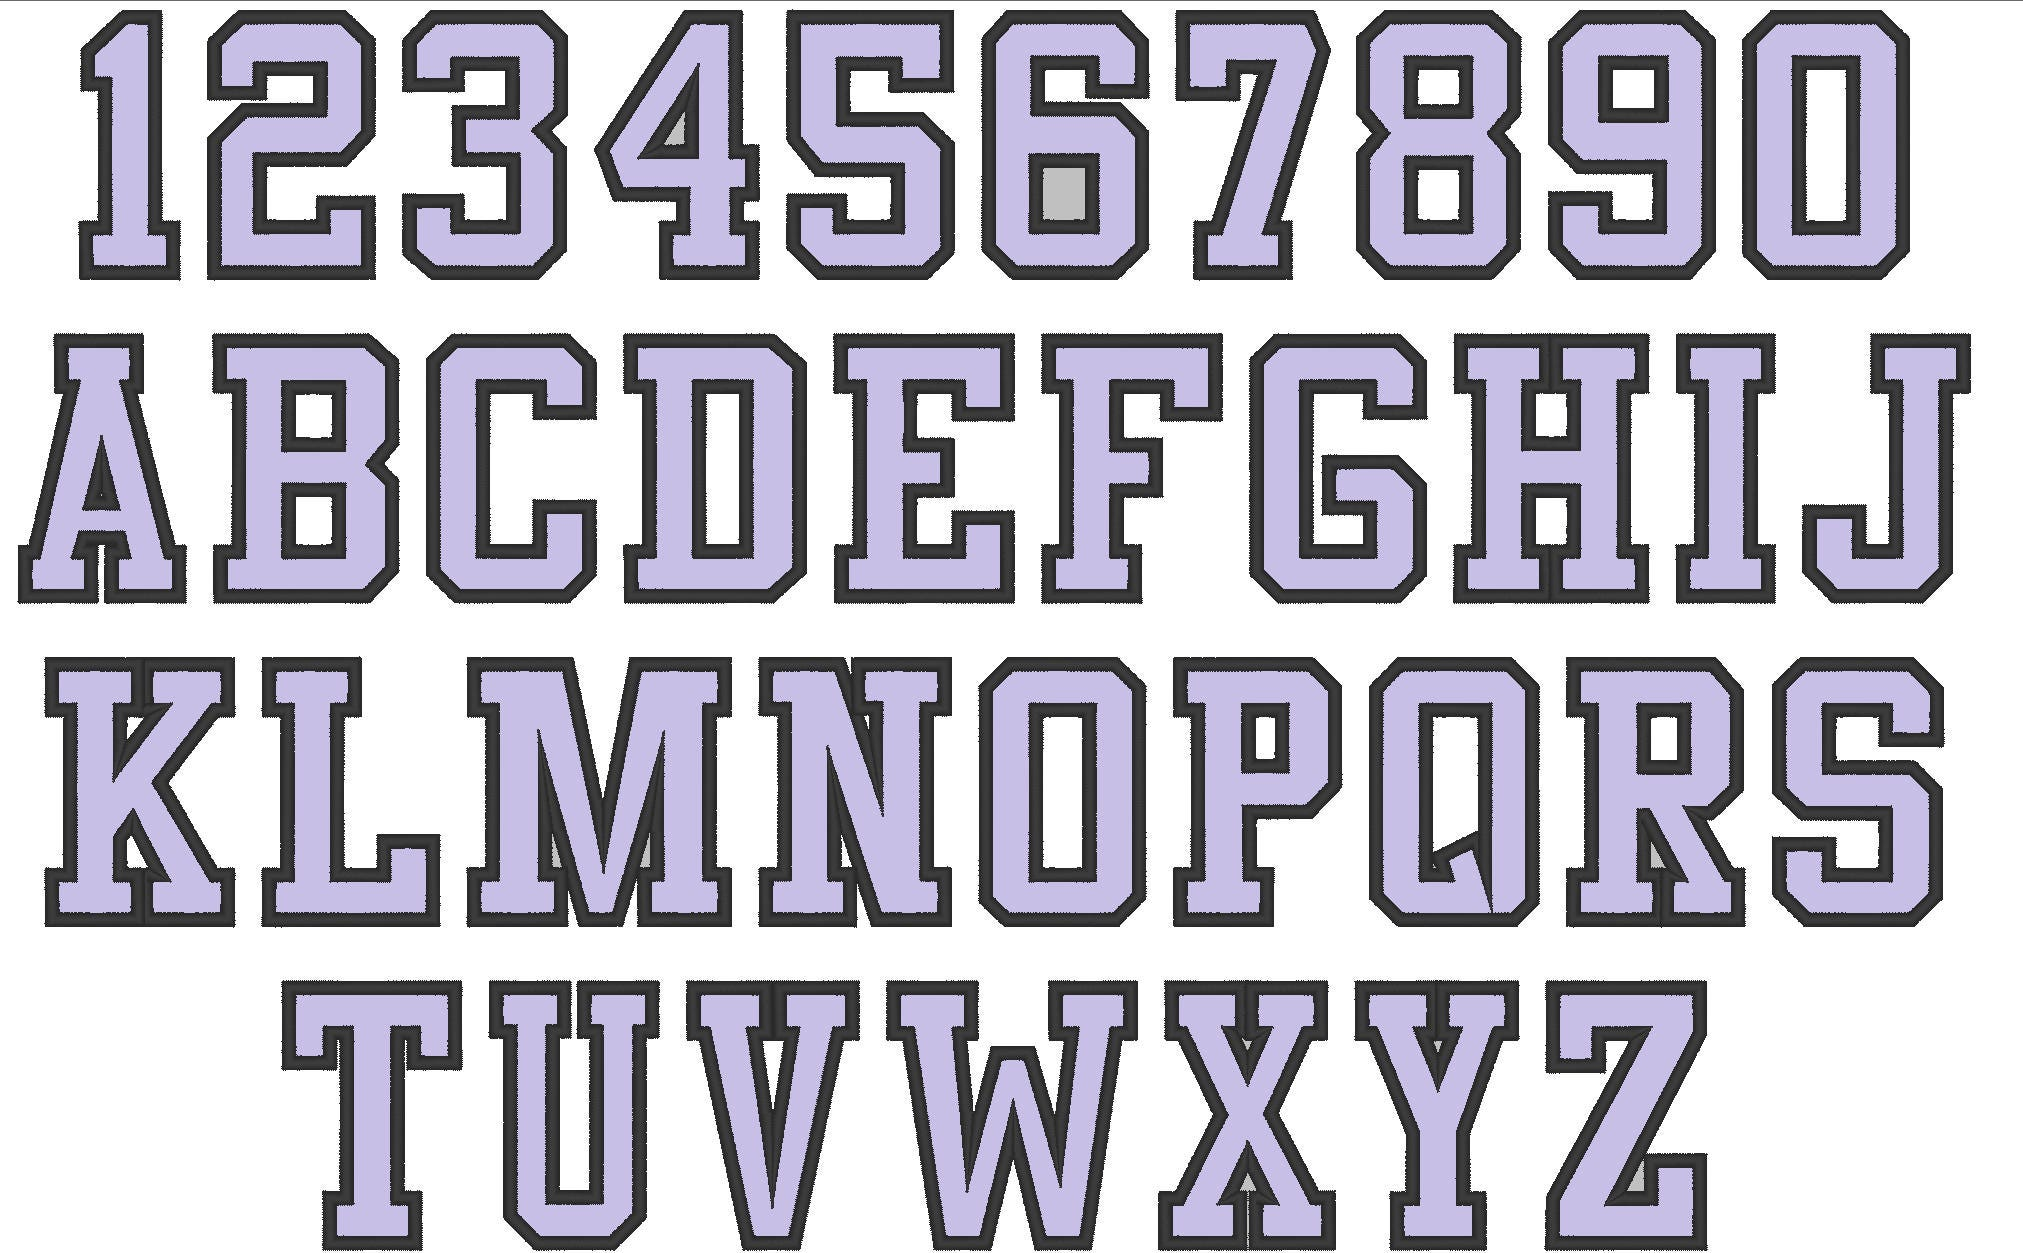 Hight school varsity collegiate, block mini applique Font machine  embroidery designs - many sizes, BX embroidery, bx font alphabet sport